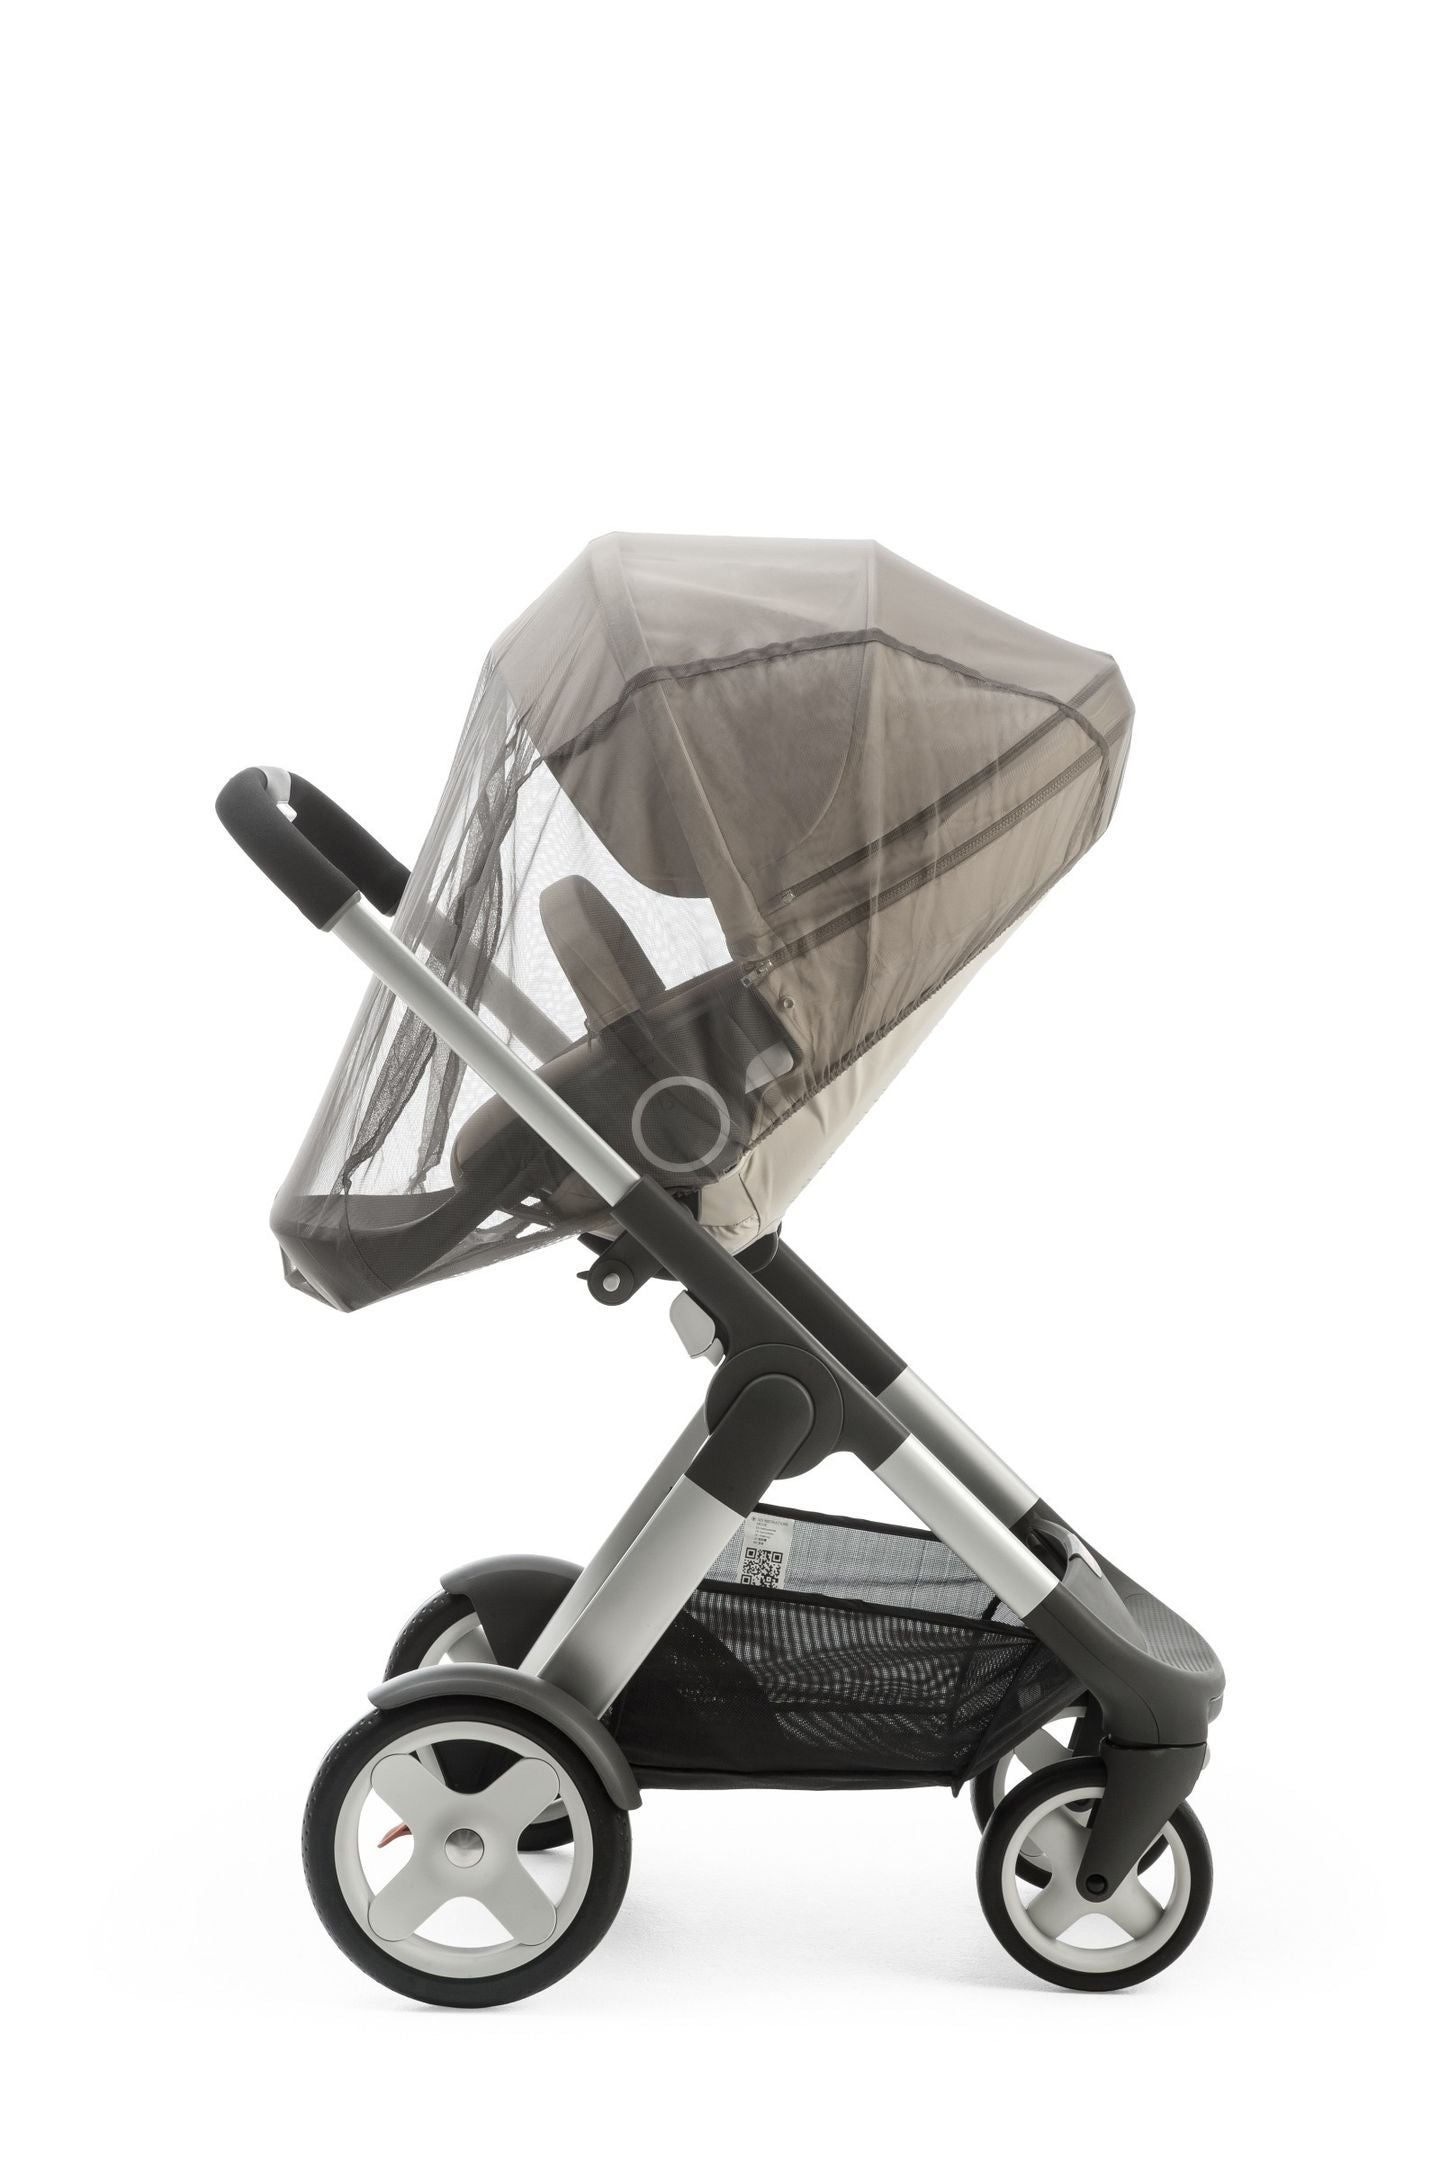 Stokke Stroller Mosquito Cover